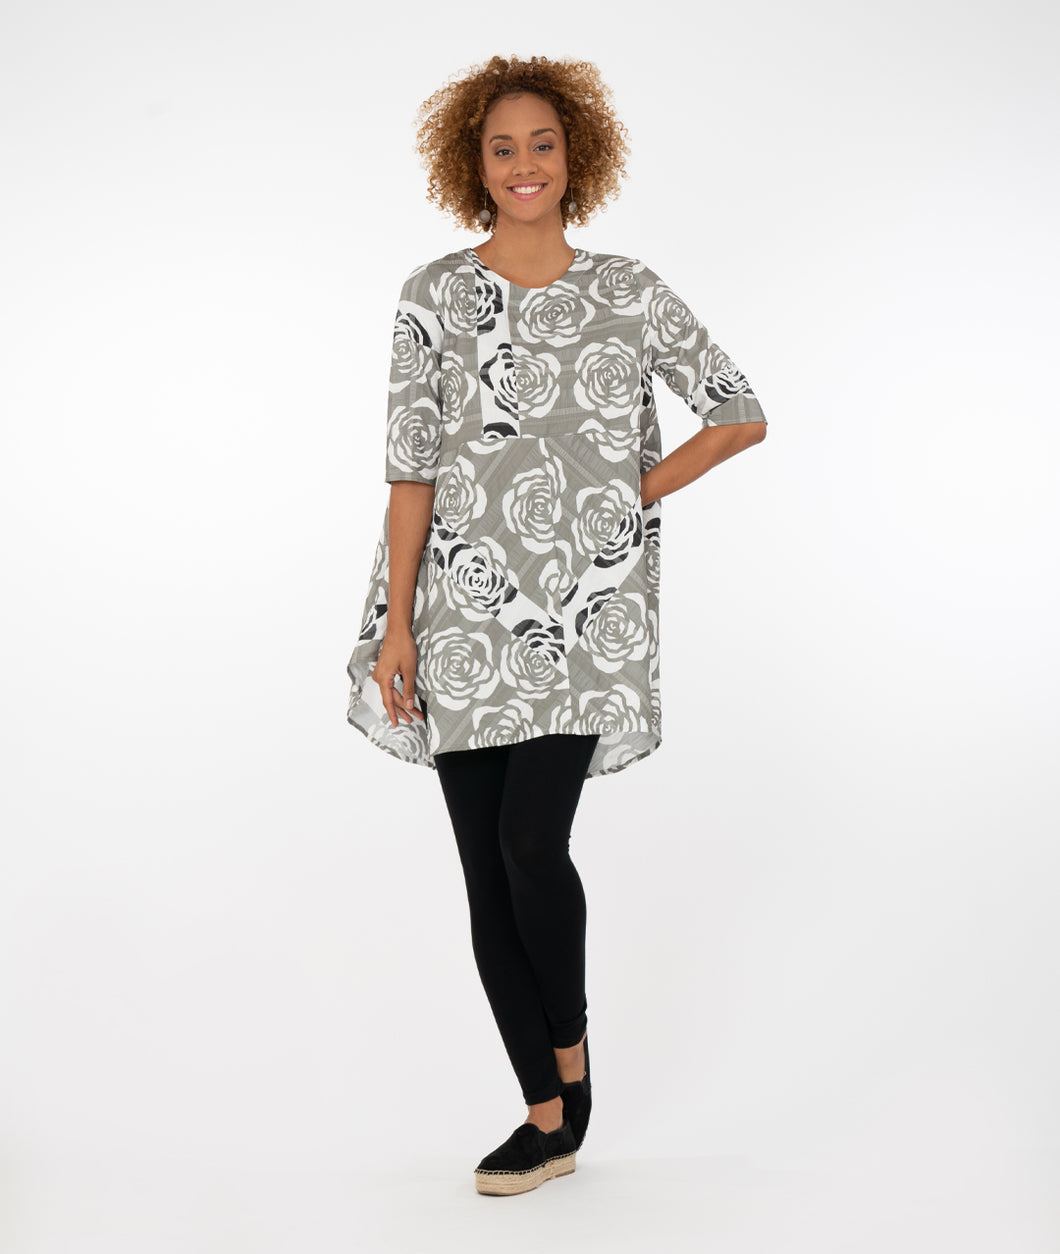 model wearing a gray and white floral design top with black leggings in front of a white background